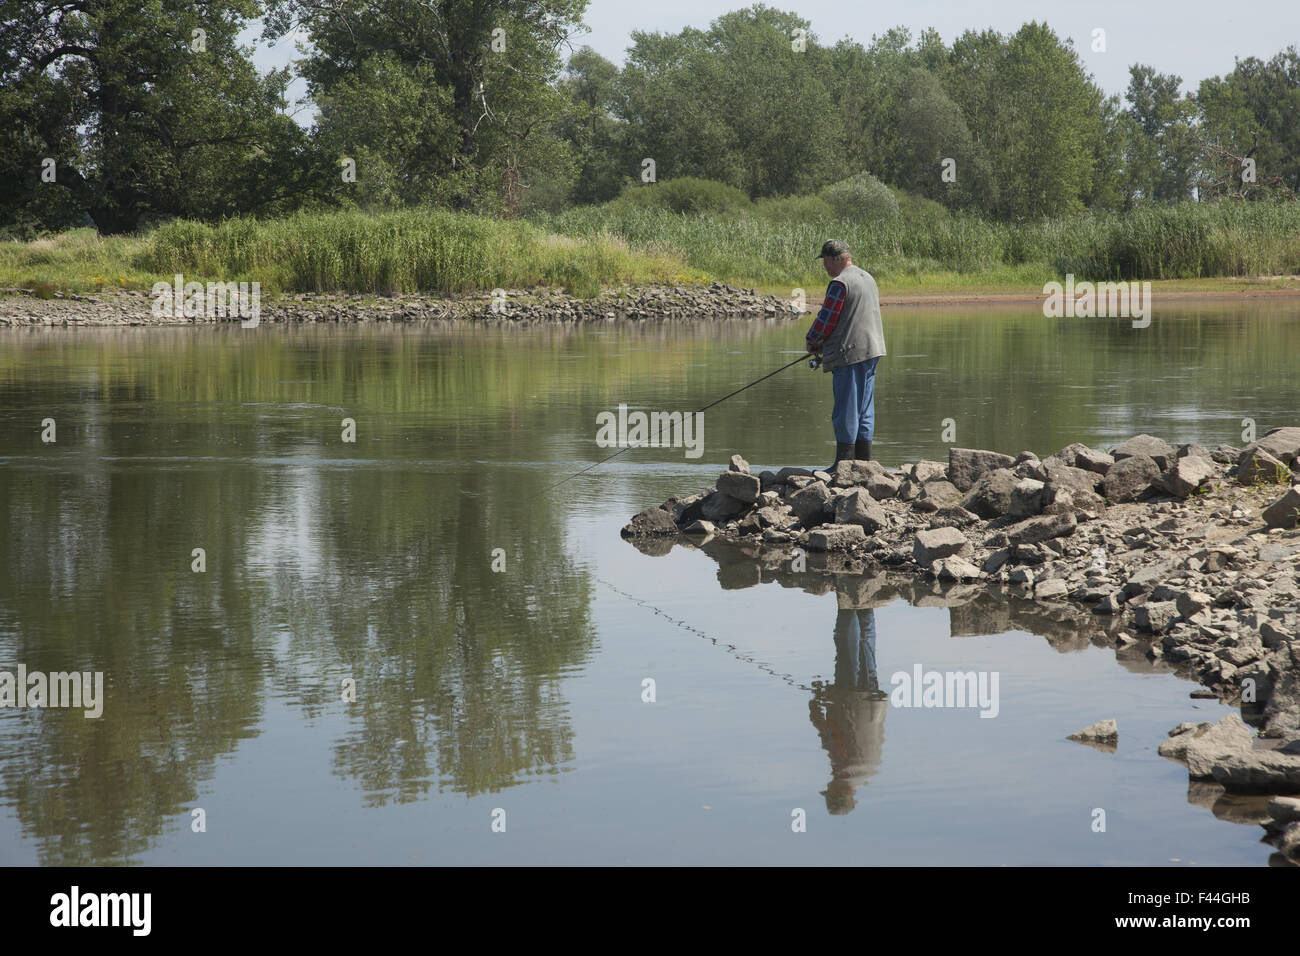 Man fishing on the River Odor the 2nd longest river in Poland. - Stock Image